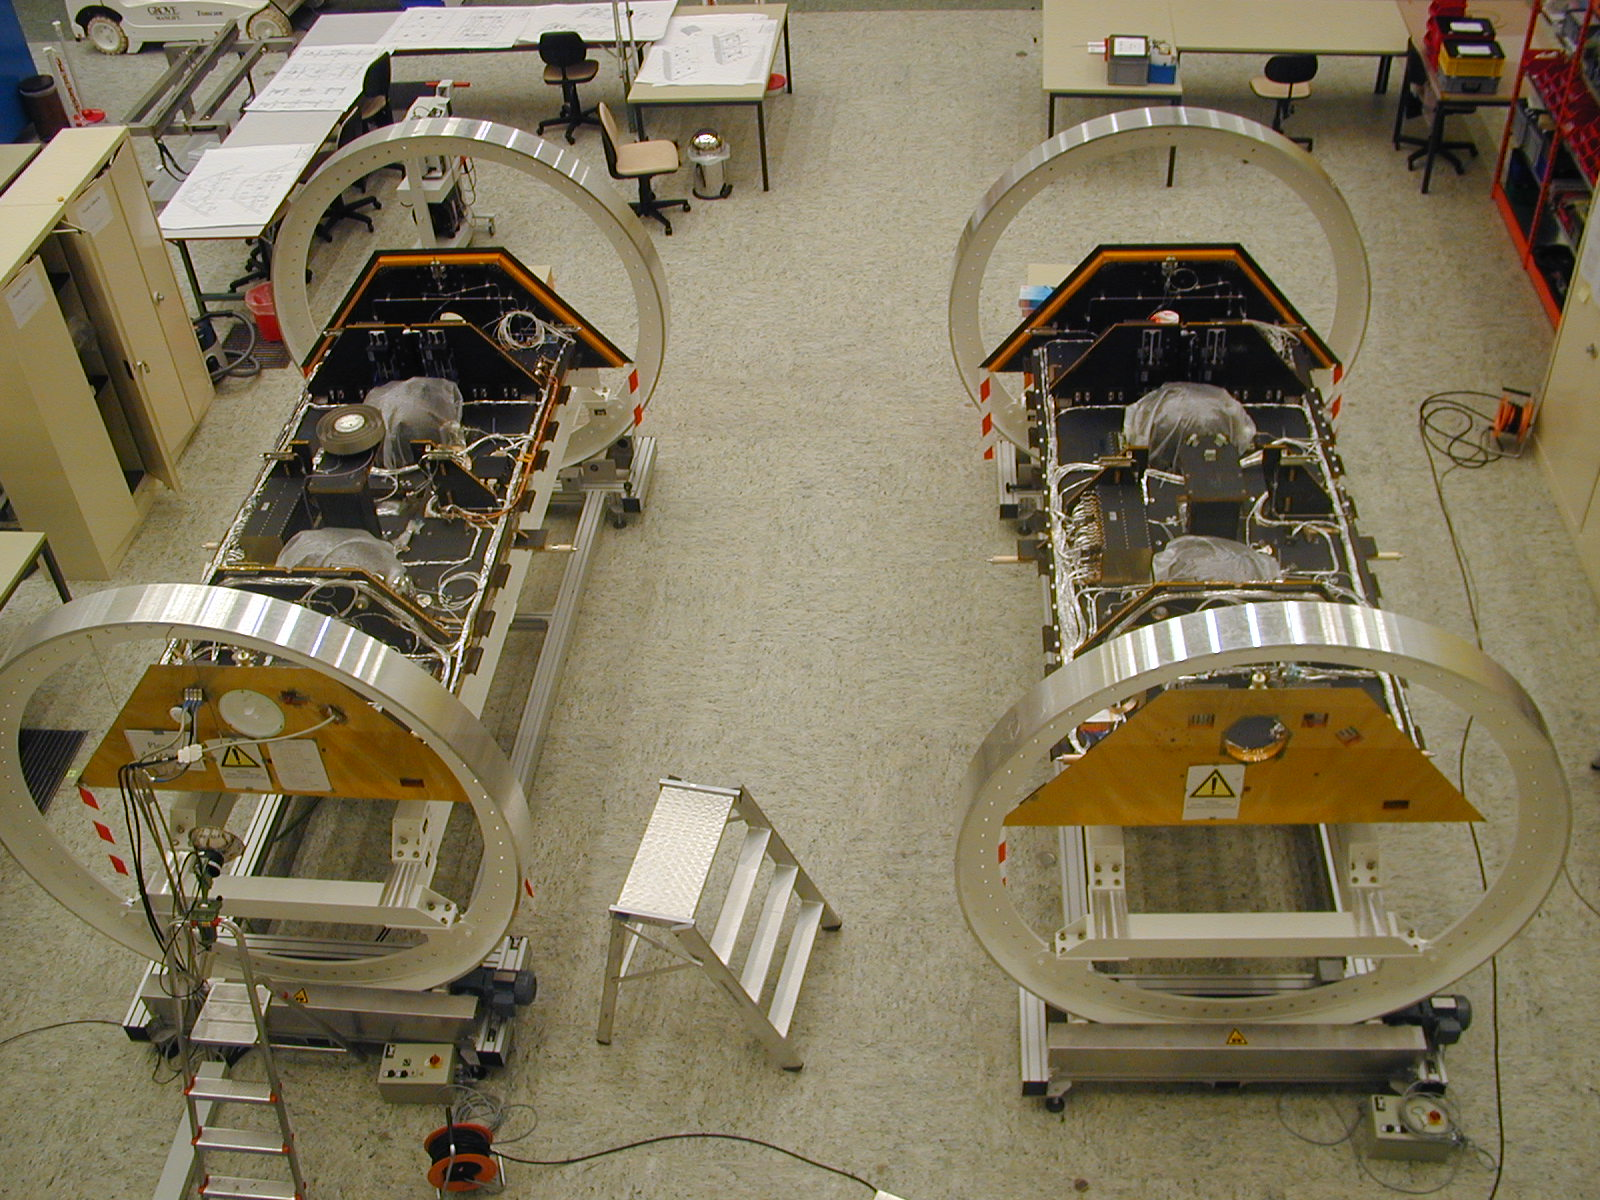 The GRACE satellites are shown without solar panels during component integration in a German clean room.